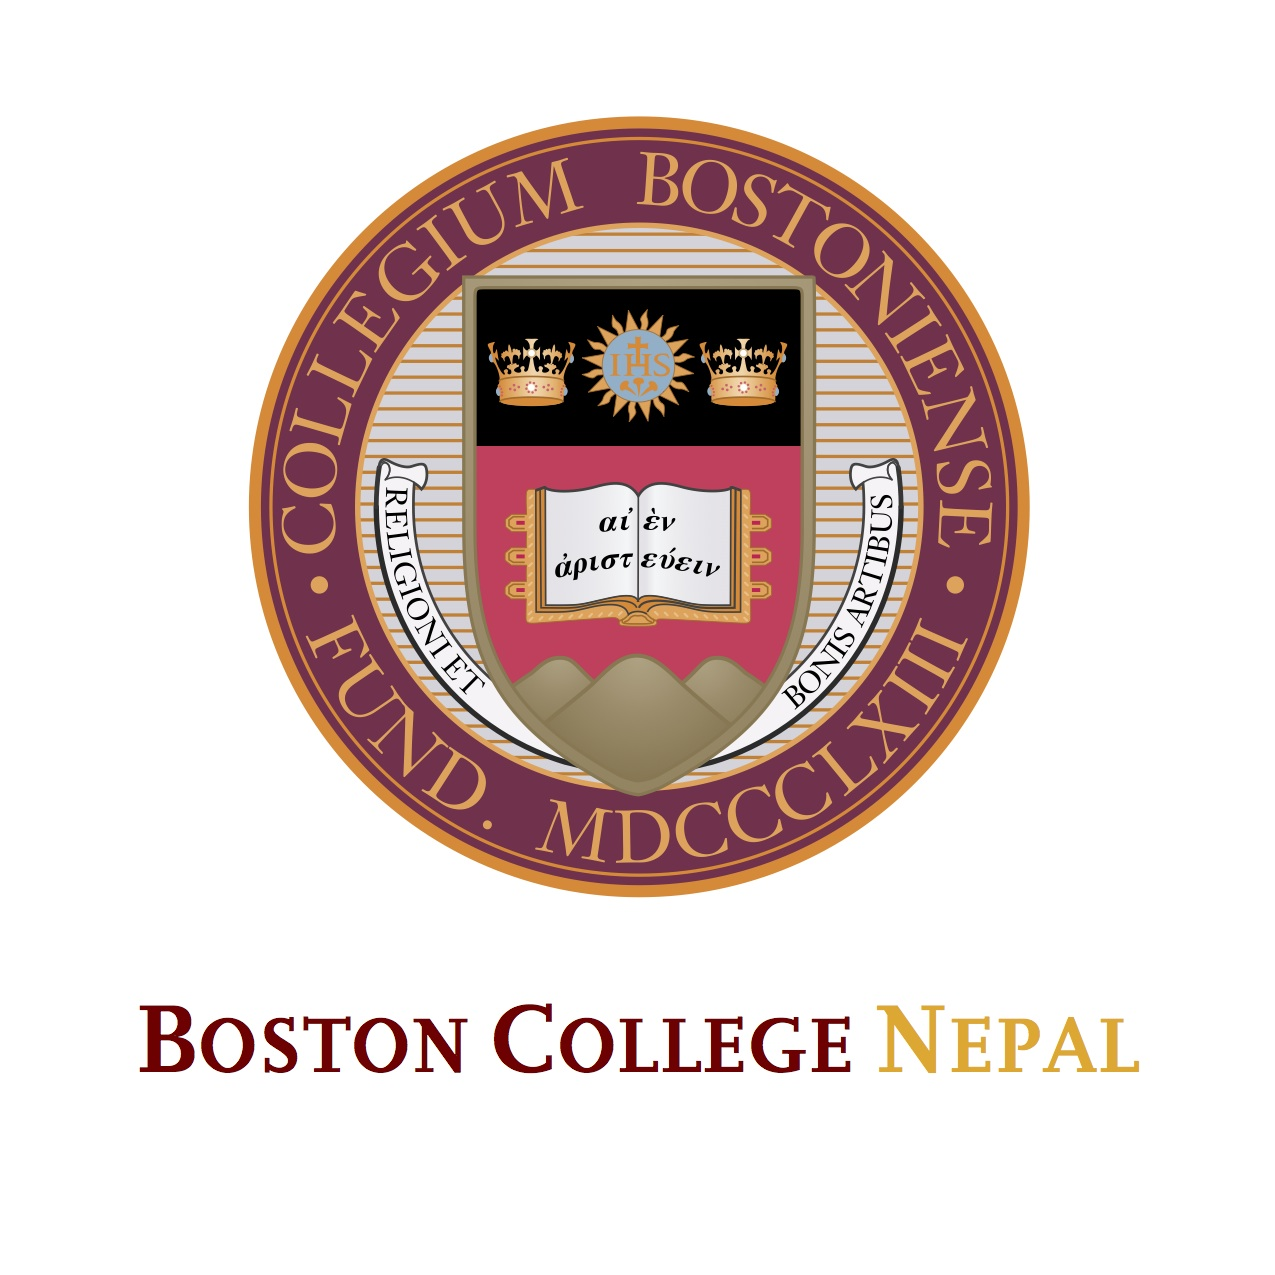 Boston College Nepal Program